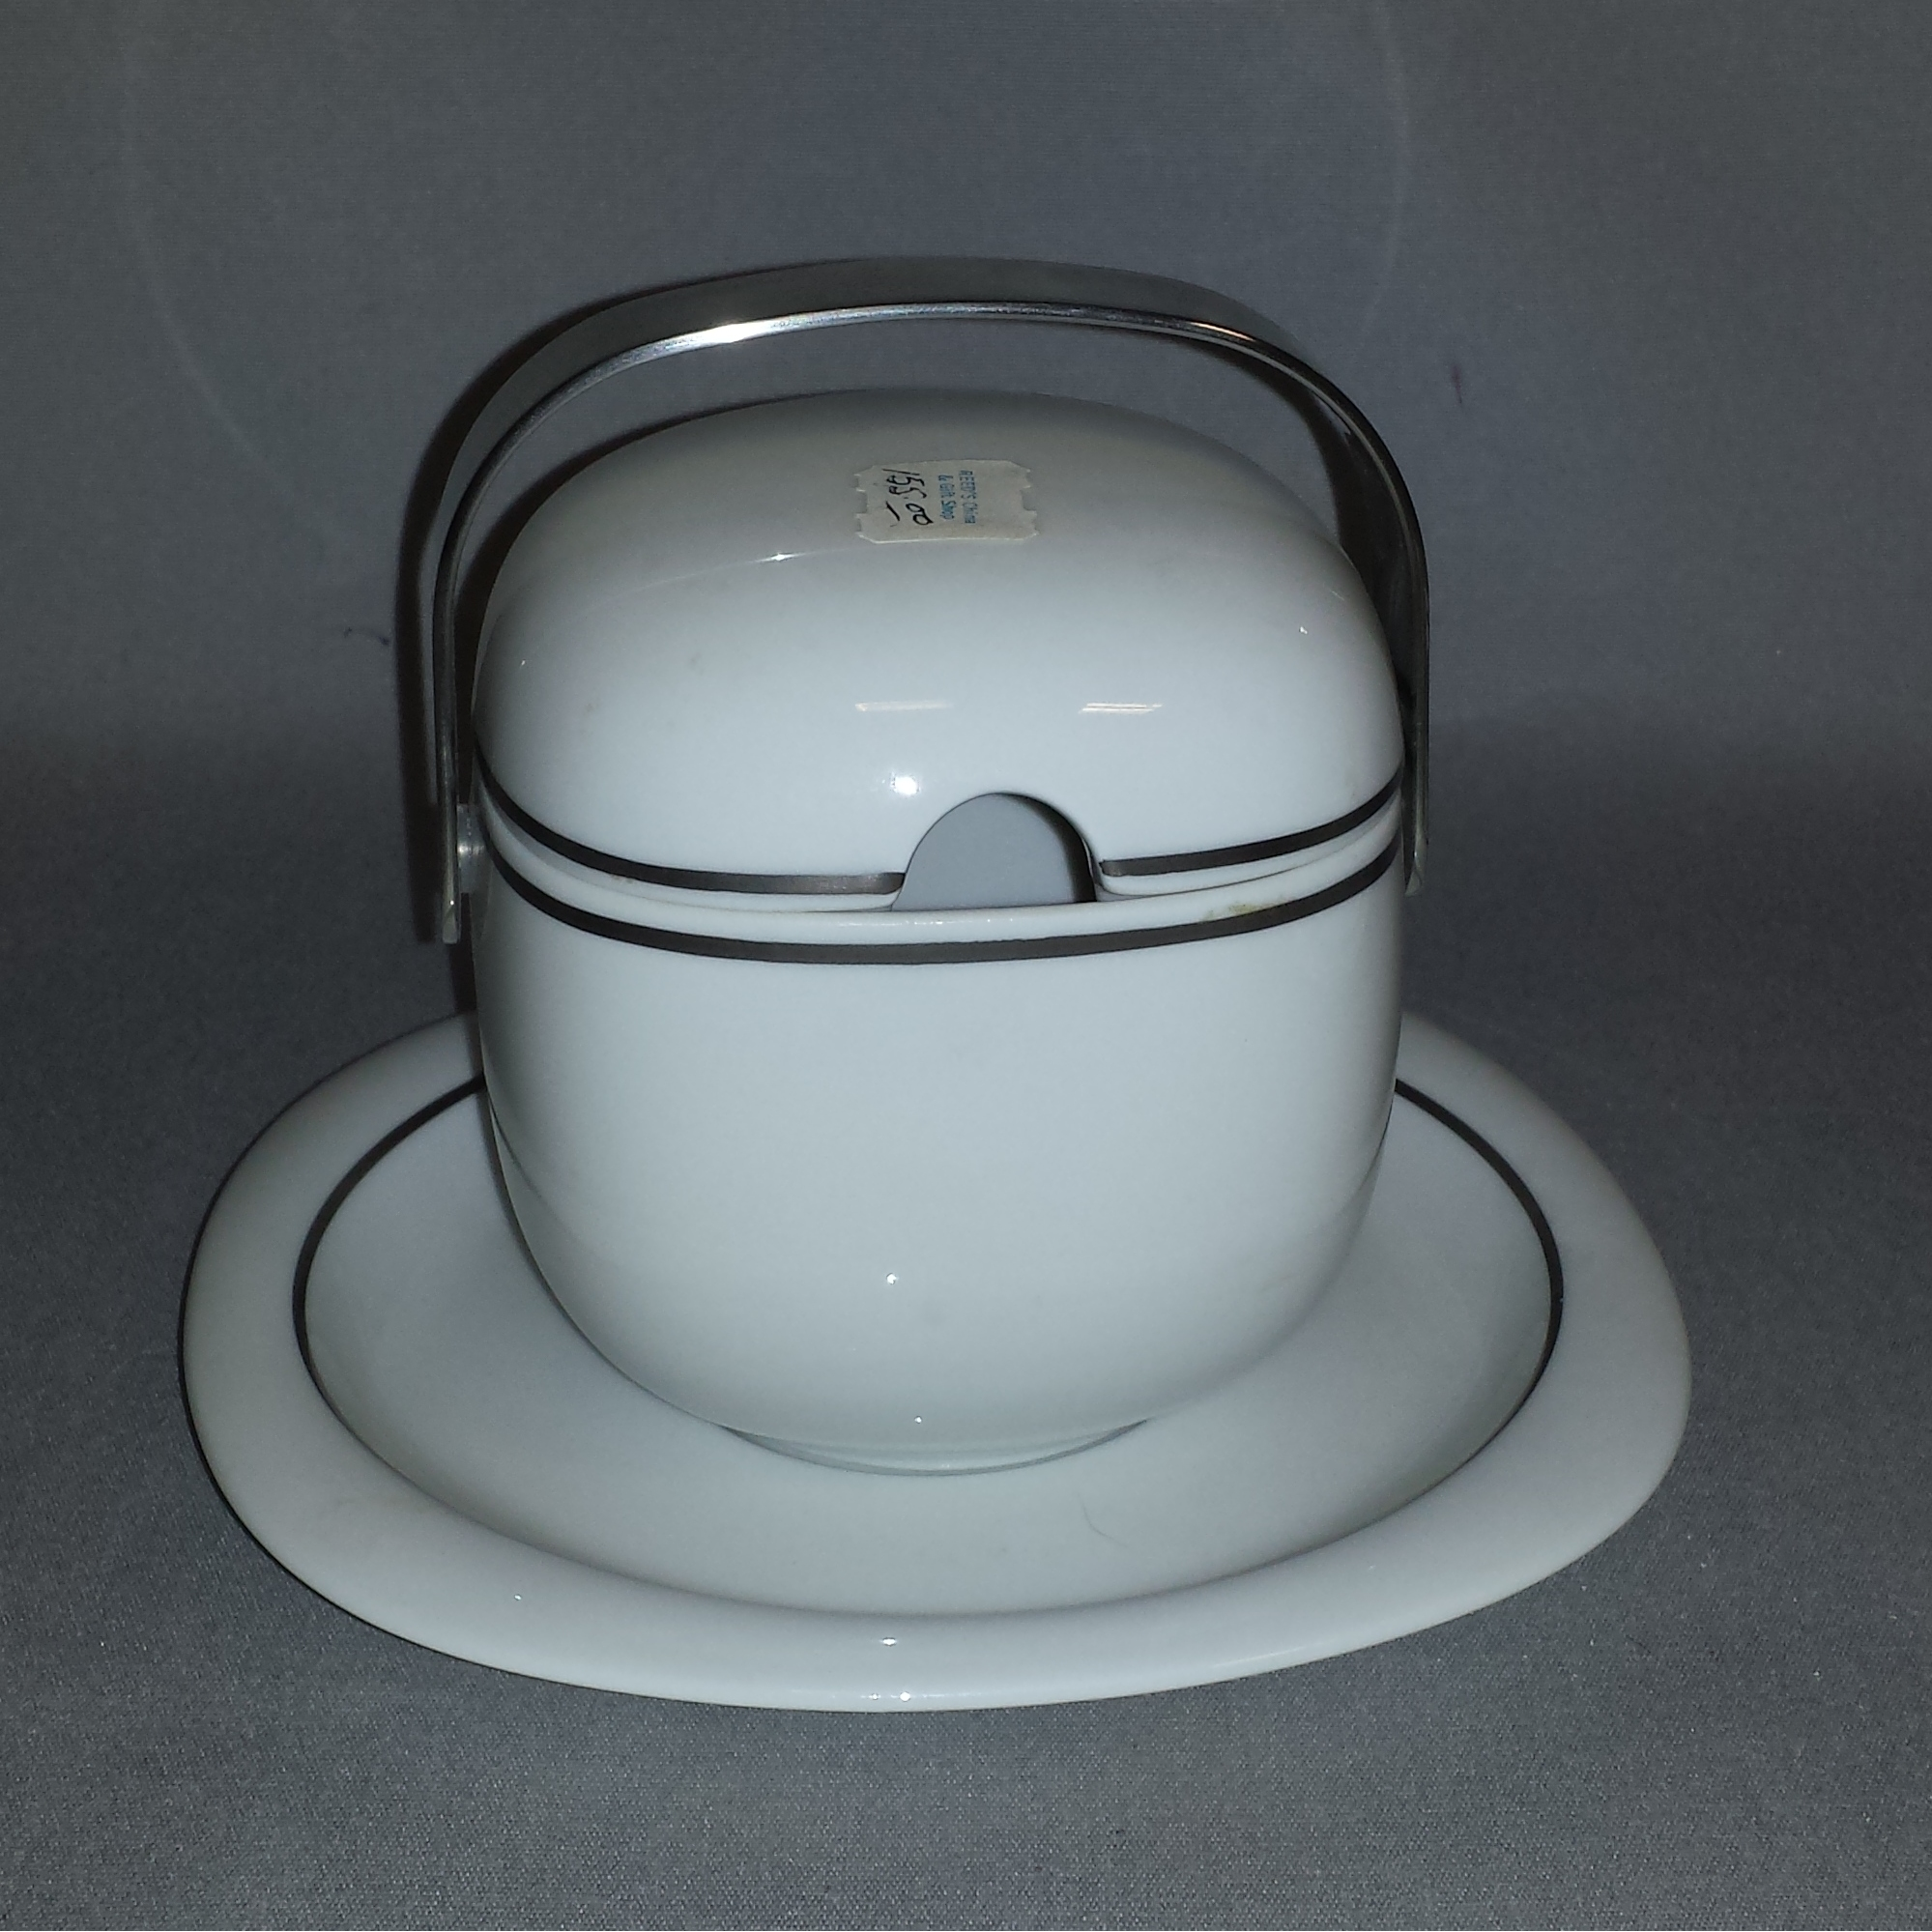 Rosenthal Suomi Platinum sauce boat and plate - full view